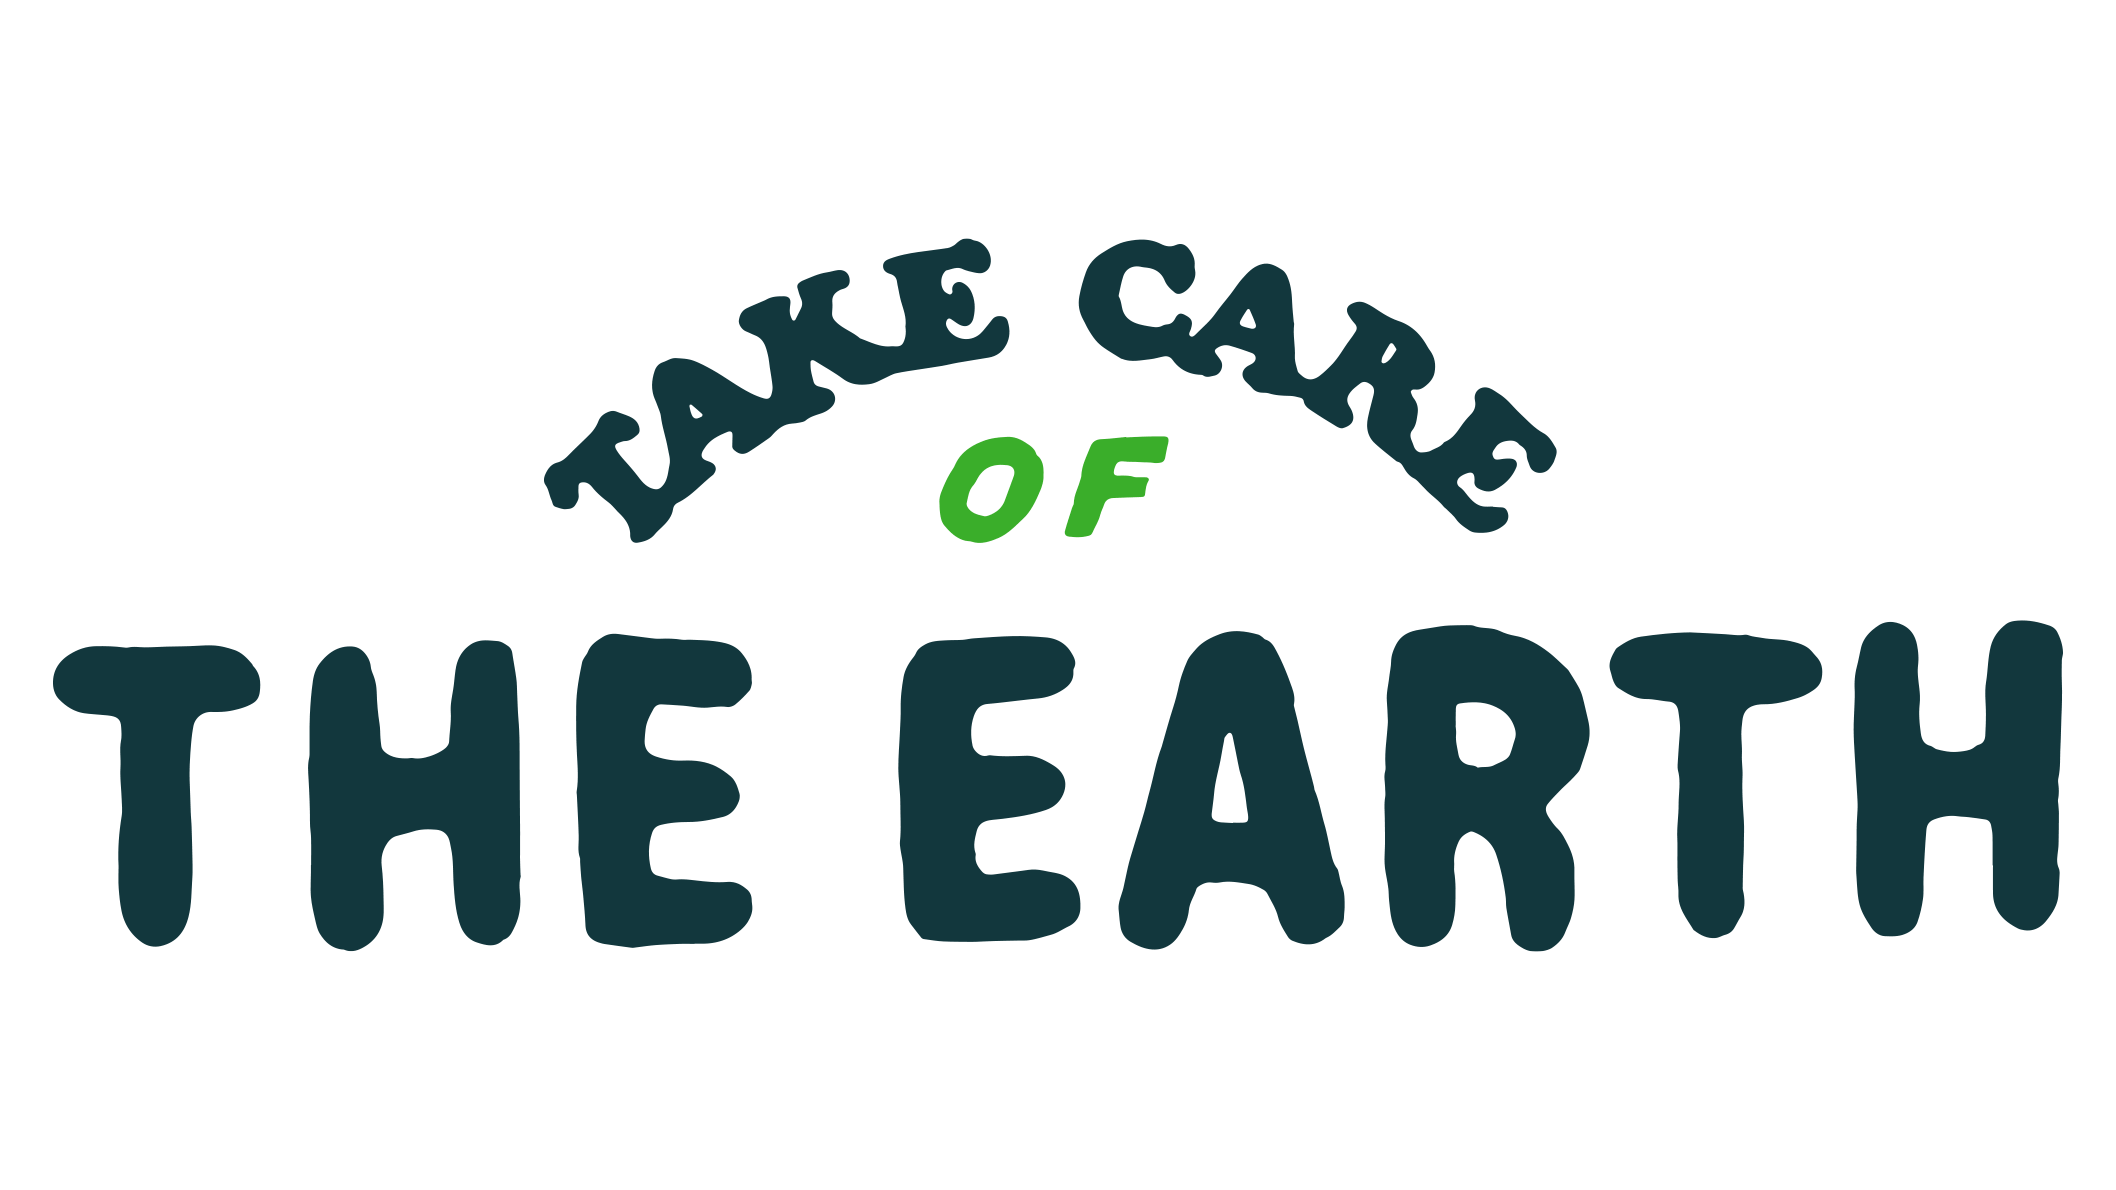 The words Take Care of the Earth